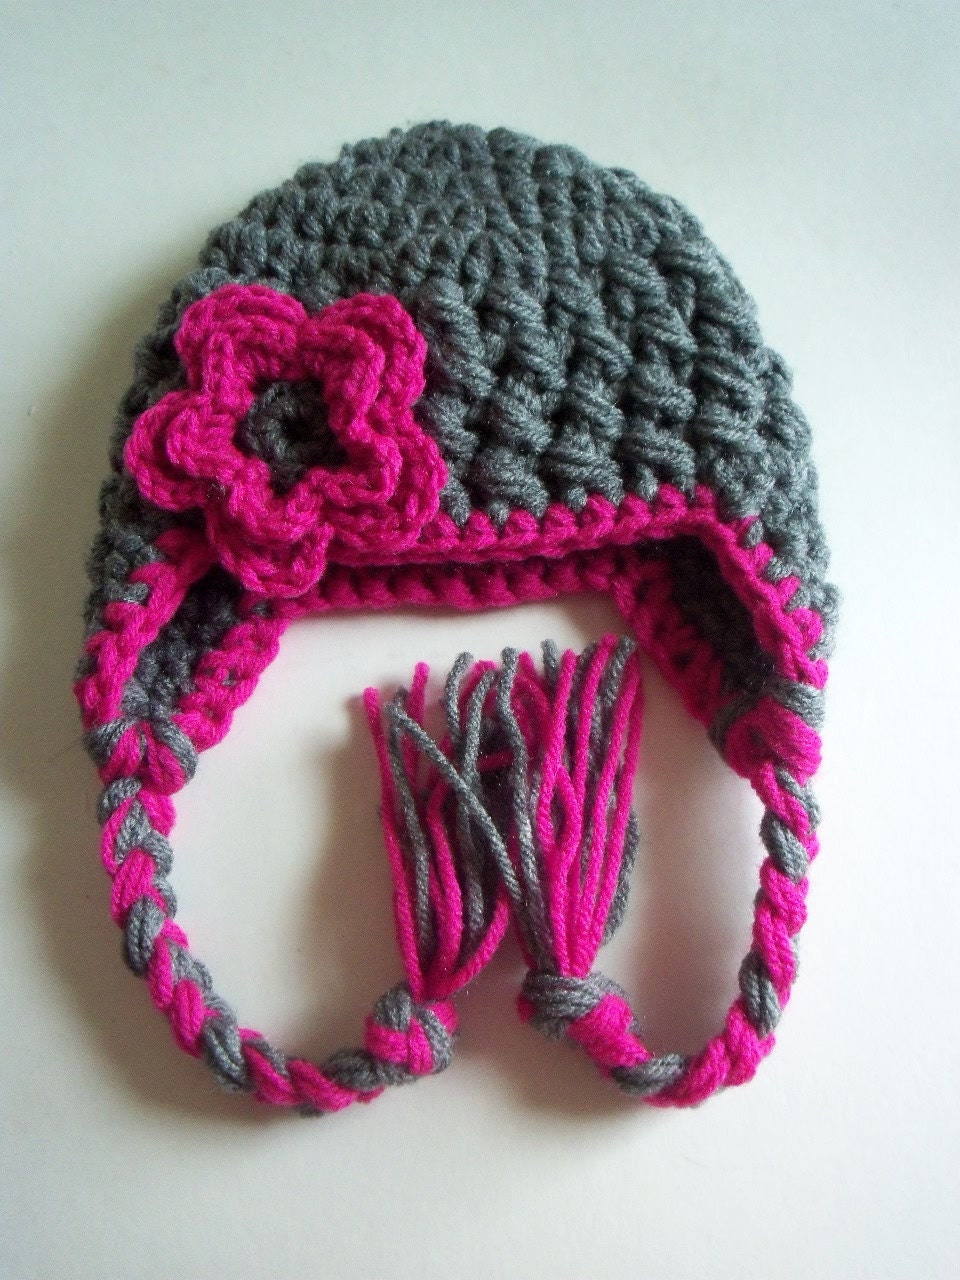 Crochet Newborn Hat In Grey and Hot pink